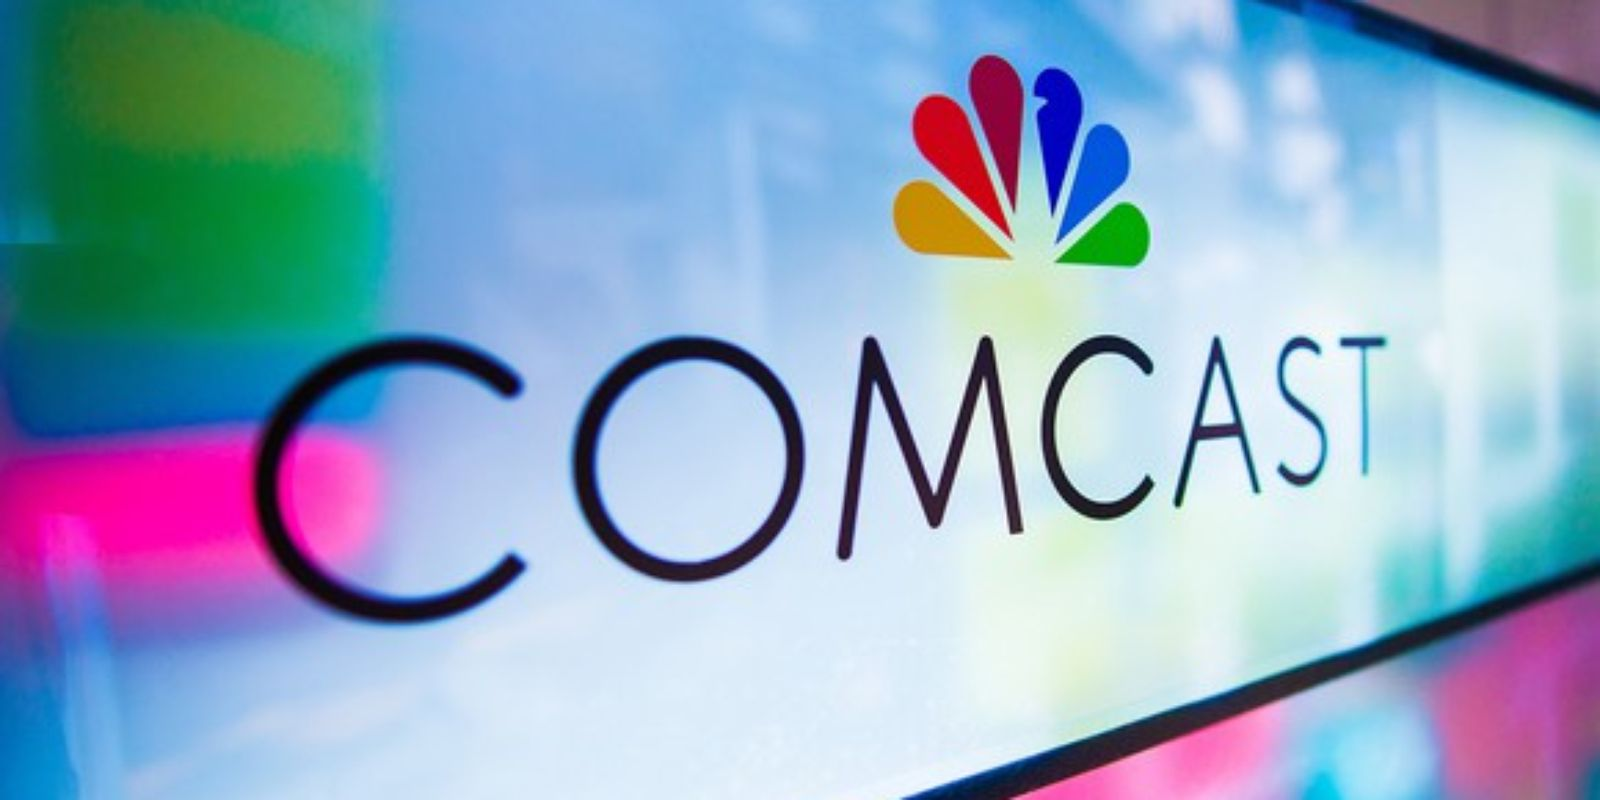 Comcast Shares Rise After Q1 Earnings Blow Past Estimates; Target Price $65